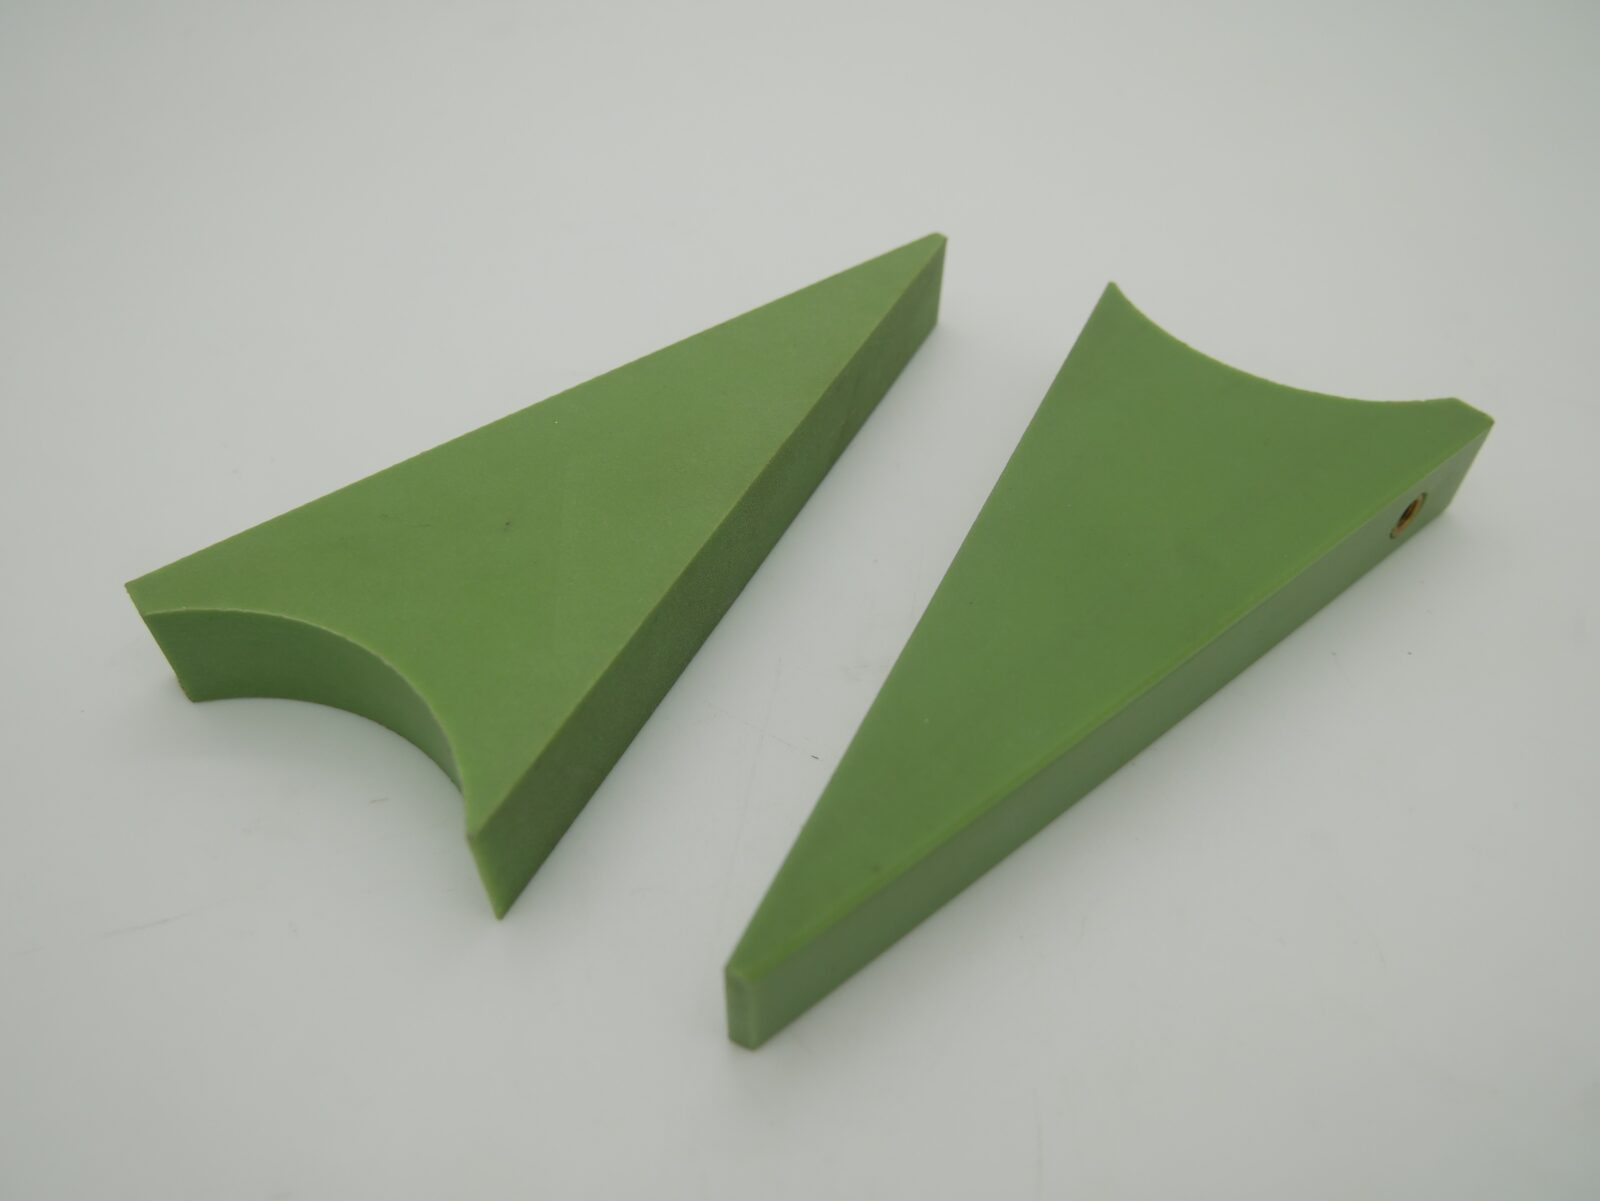 GTO52 CPC Ink Duct Dividers (Pair) HDM: MV.022.805